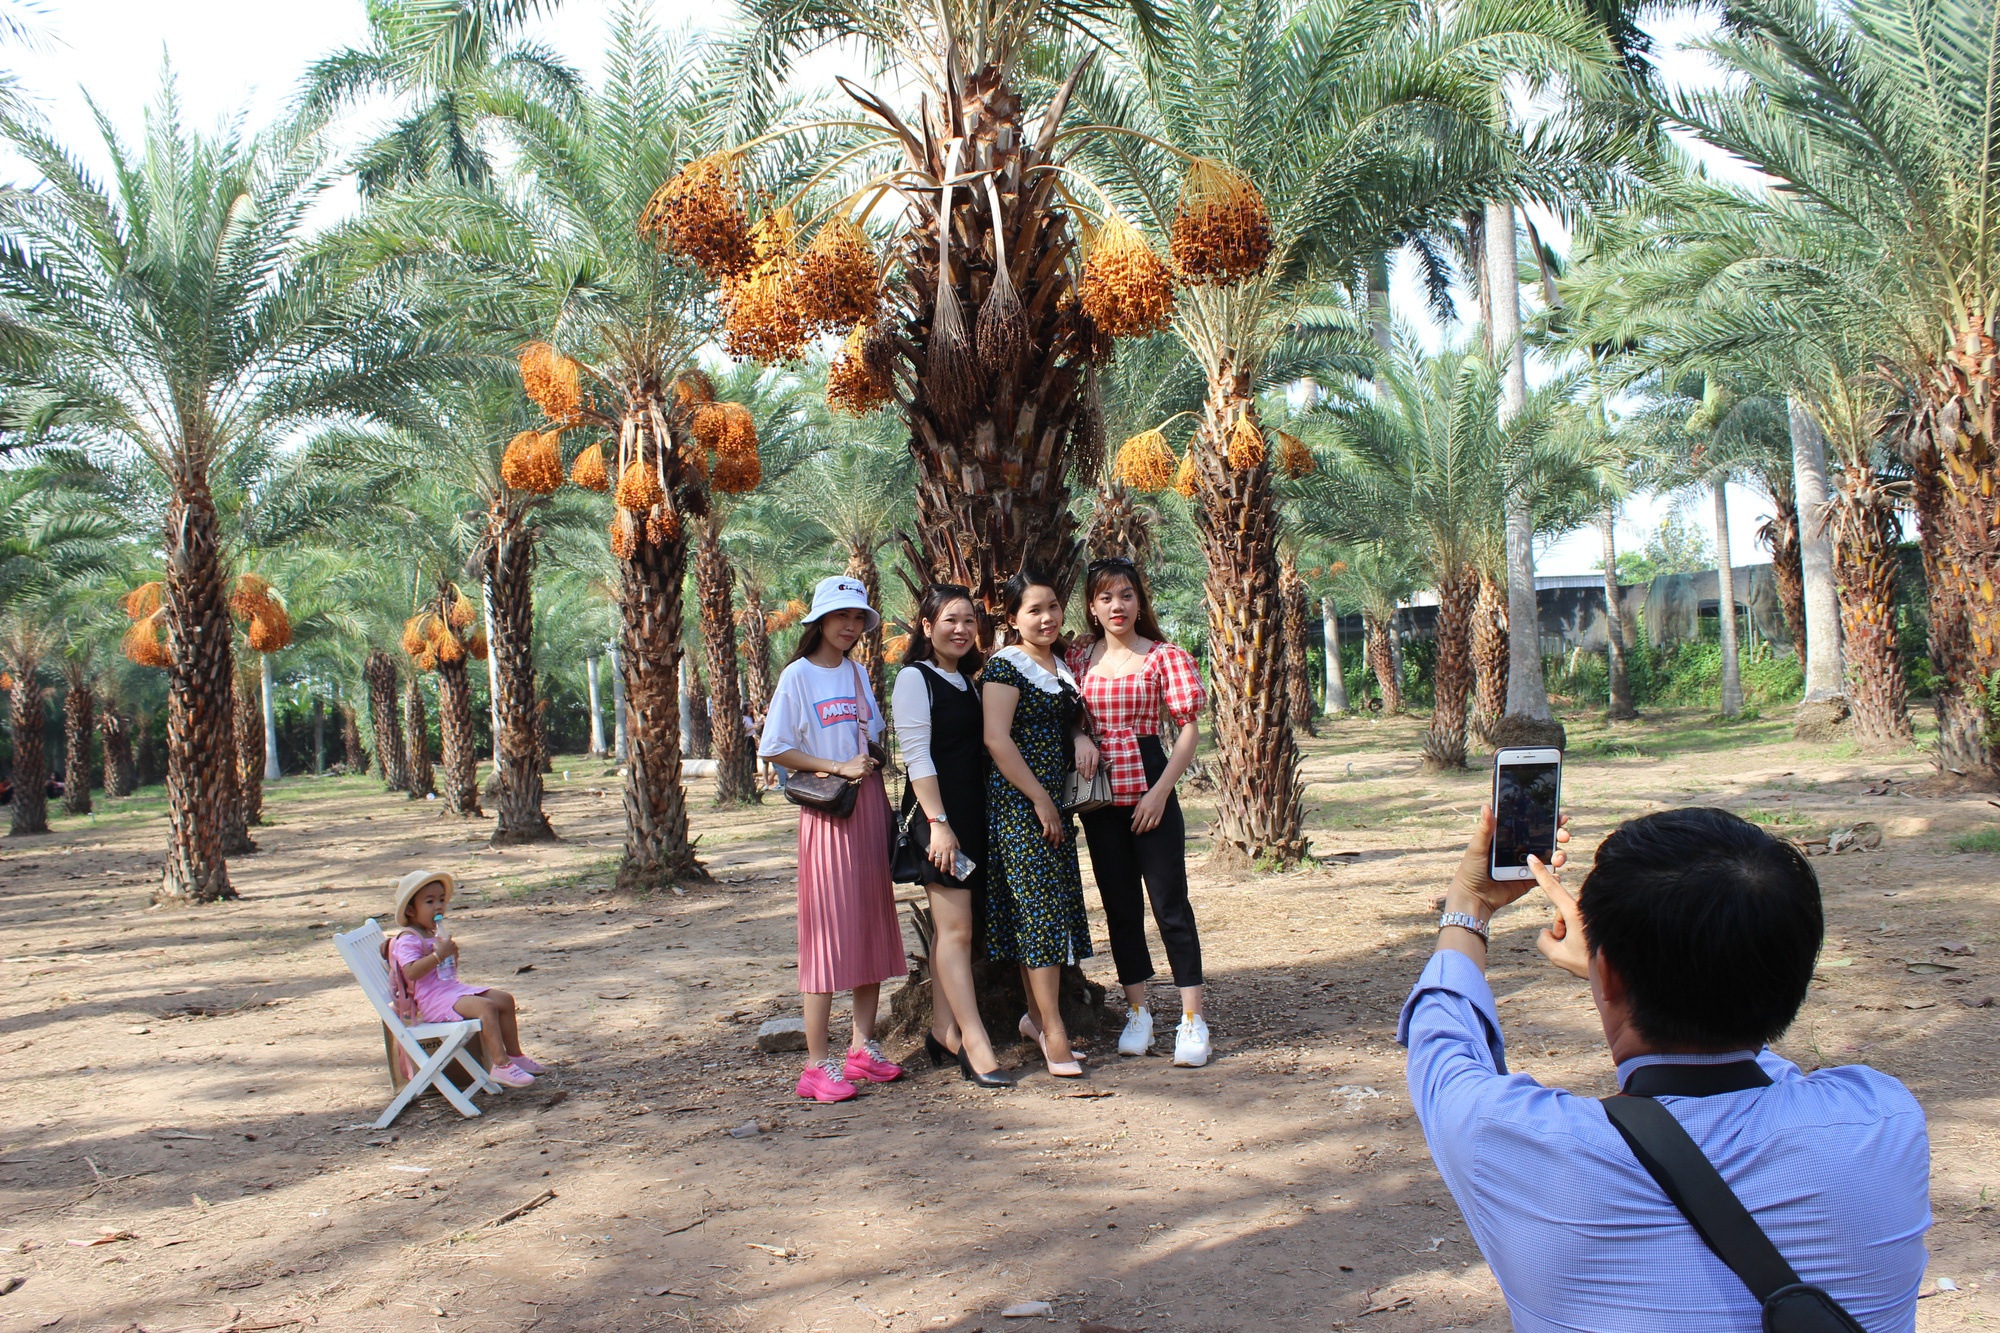 Date palm garden emerges as new photo hotspot in Vietnam's Mekong Delta